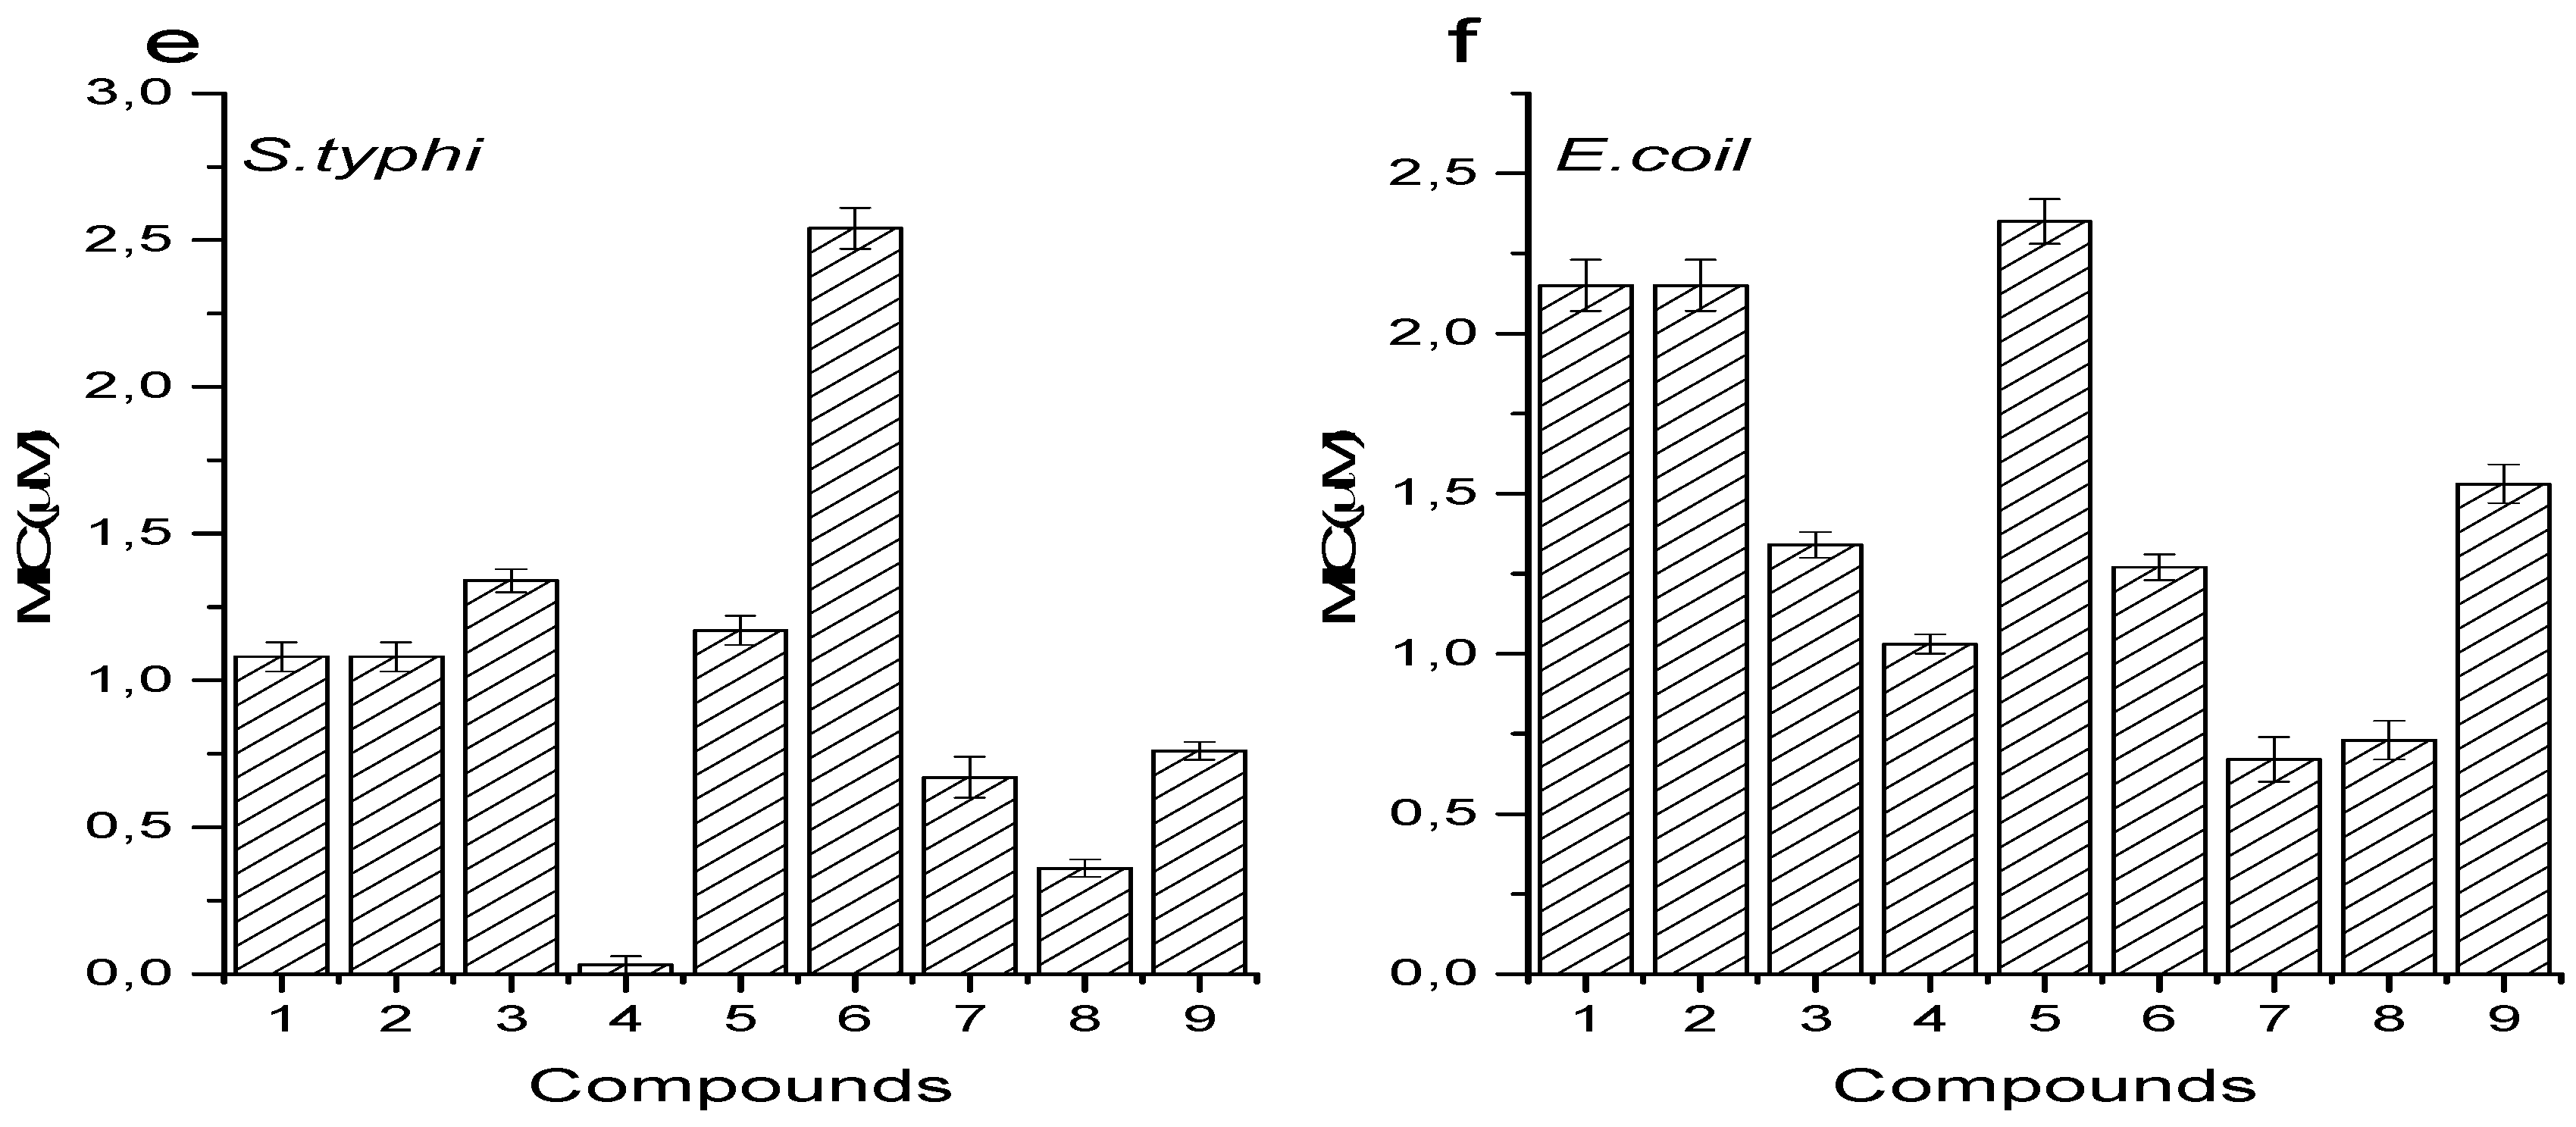 investigation of the antioxidant activity of Antioxidant activity of samples of different concentrations was calculated by using the formula, % scavenging ={(a1-a2)/a1}100 where a1 is the absorbance of the blank,a2 is the absorbance of the standard/sample extract.